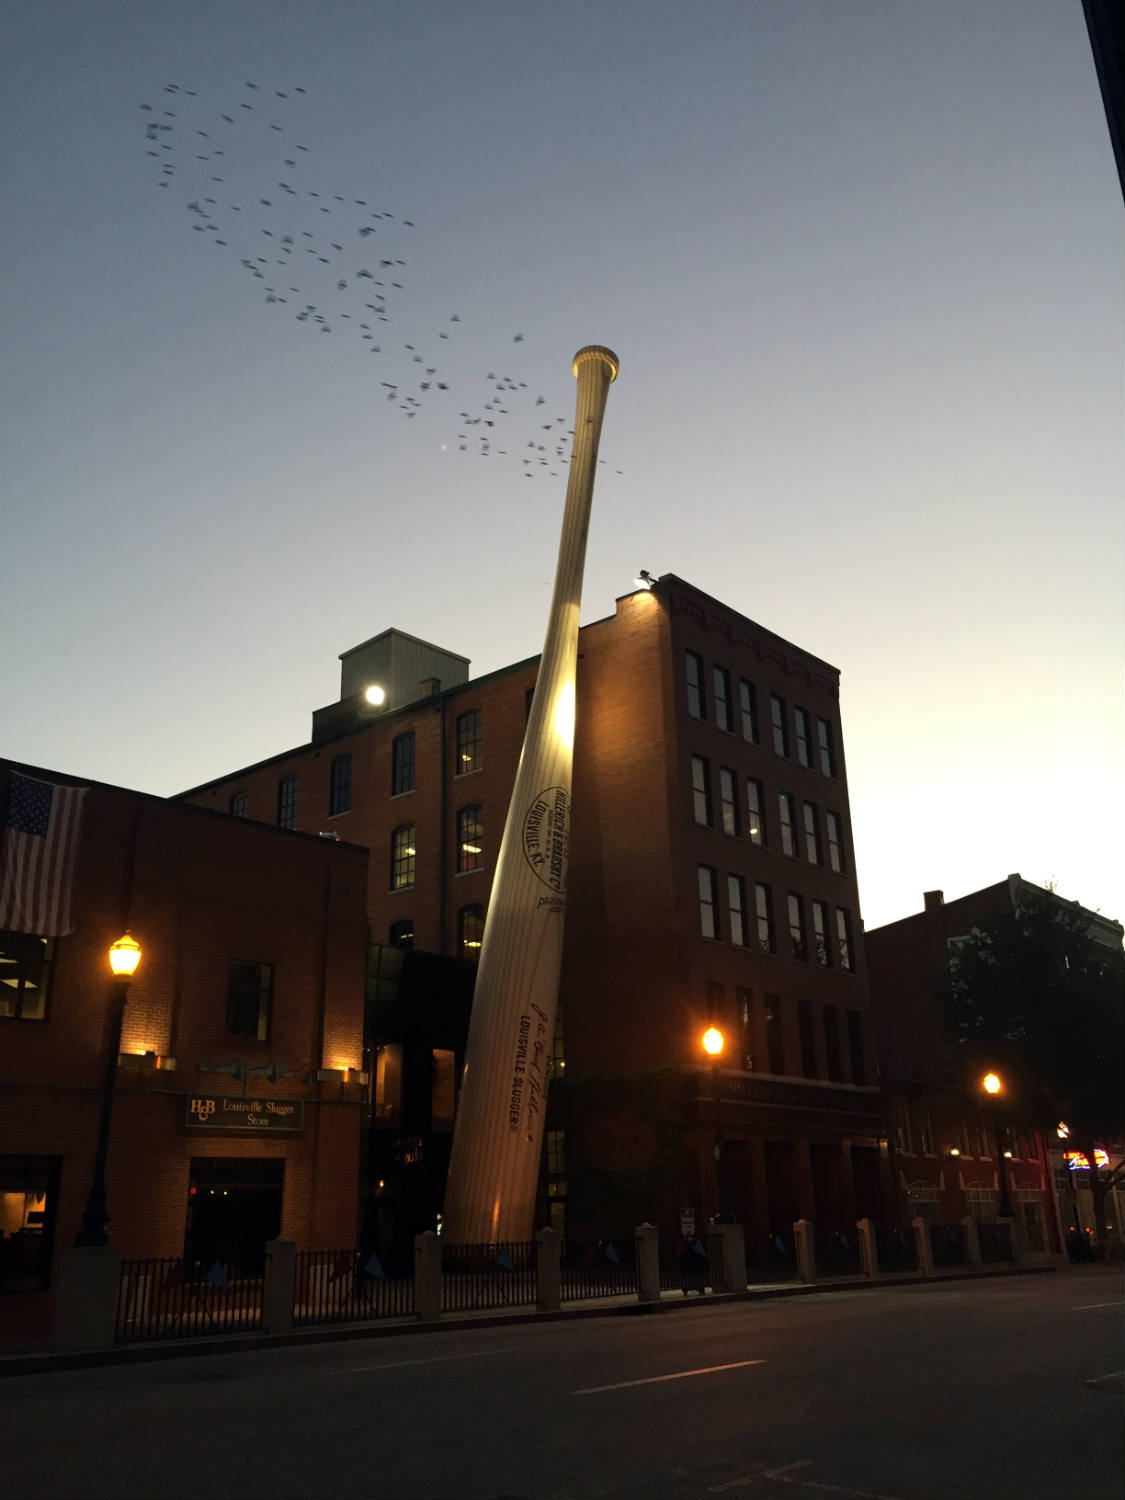 Louisville Slugger Museum and Factory in Louisville, Kentucky